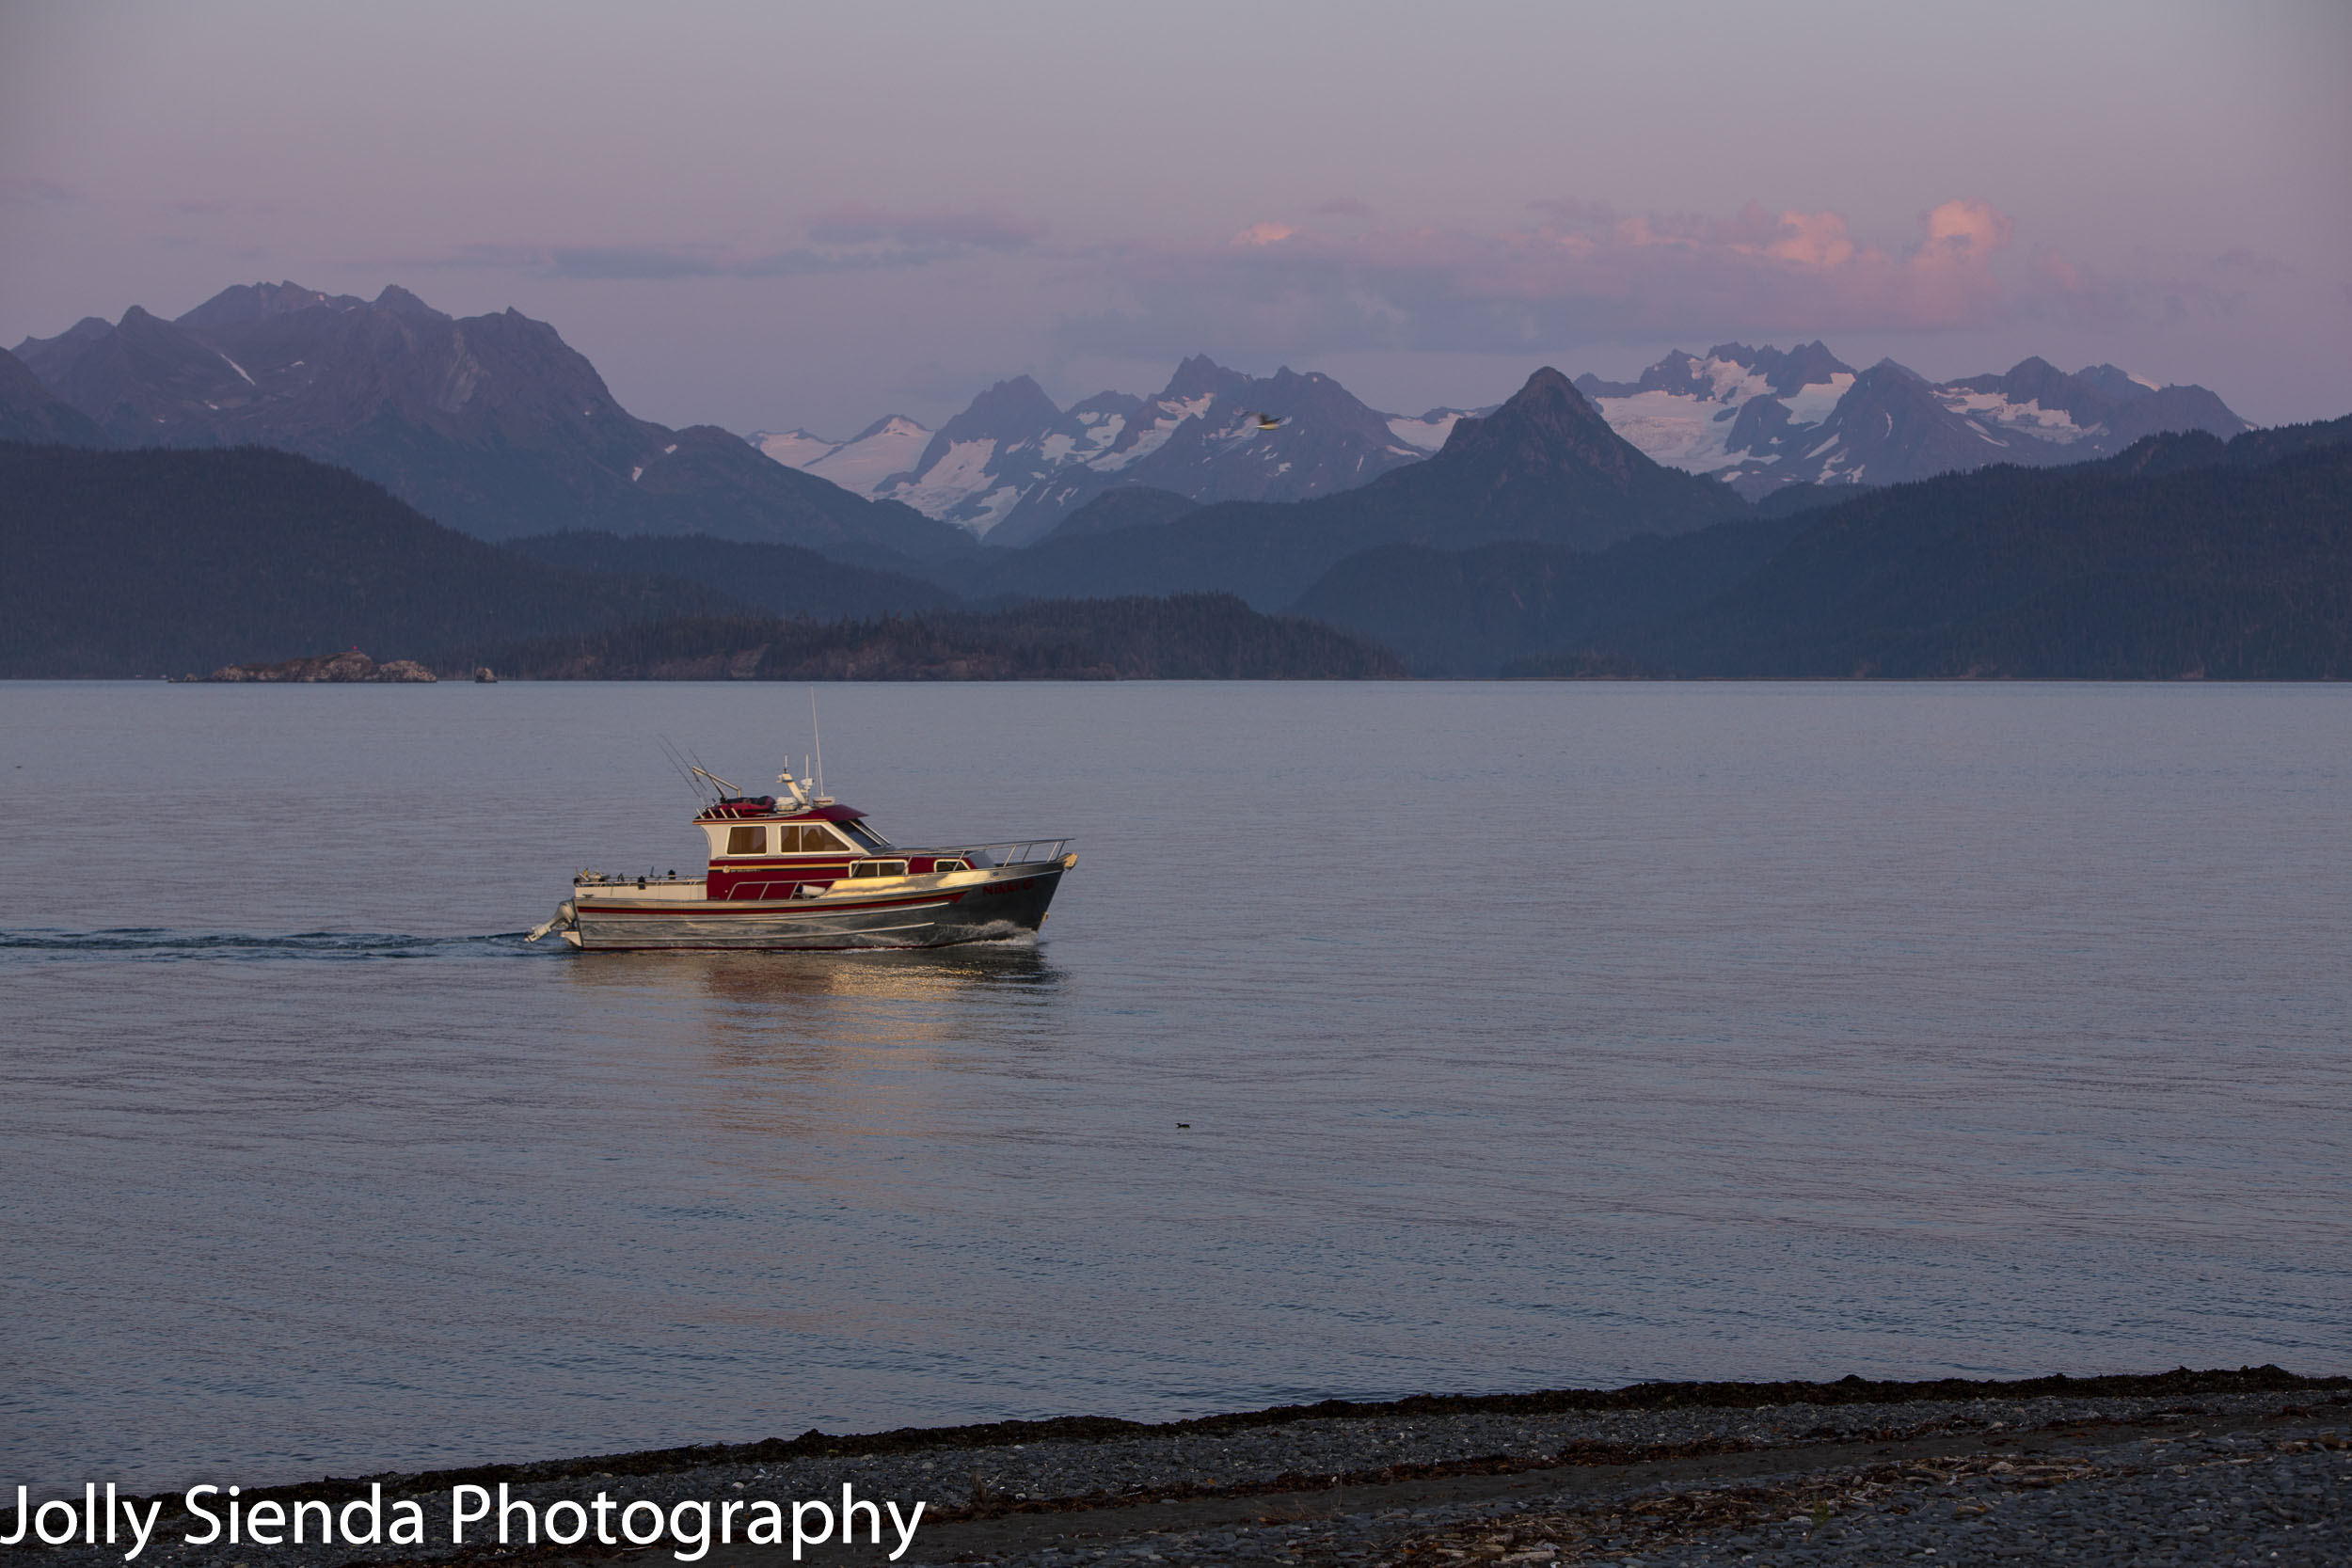 Boating on the  Kachemak Bay near glaciers and mountains